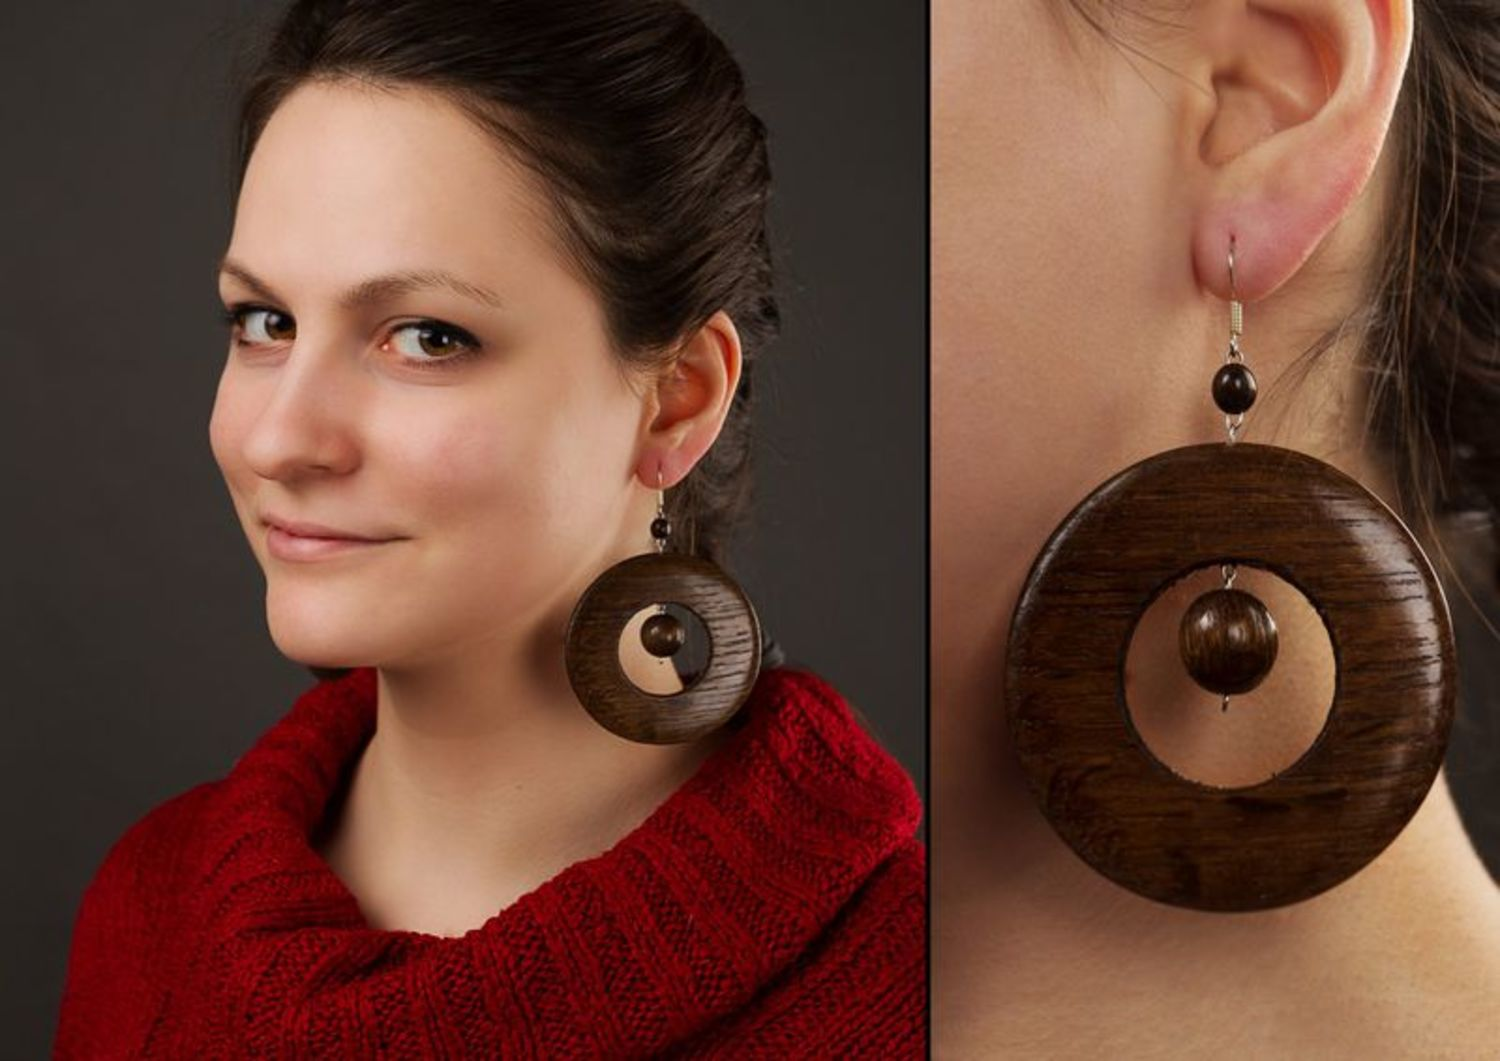 Round earrings made of wood photo 2